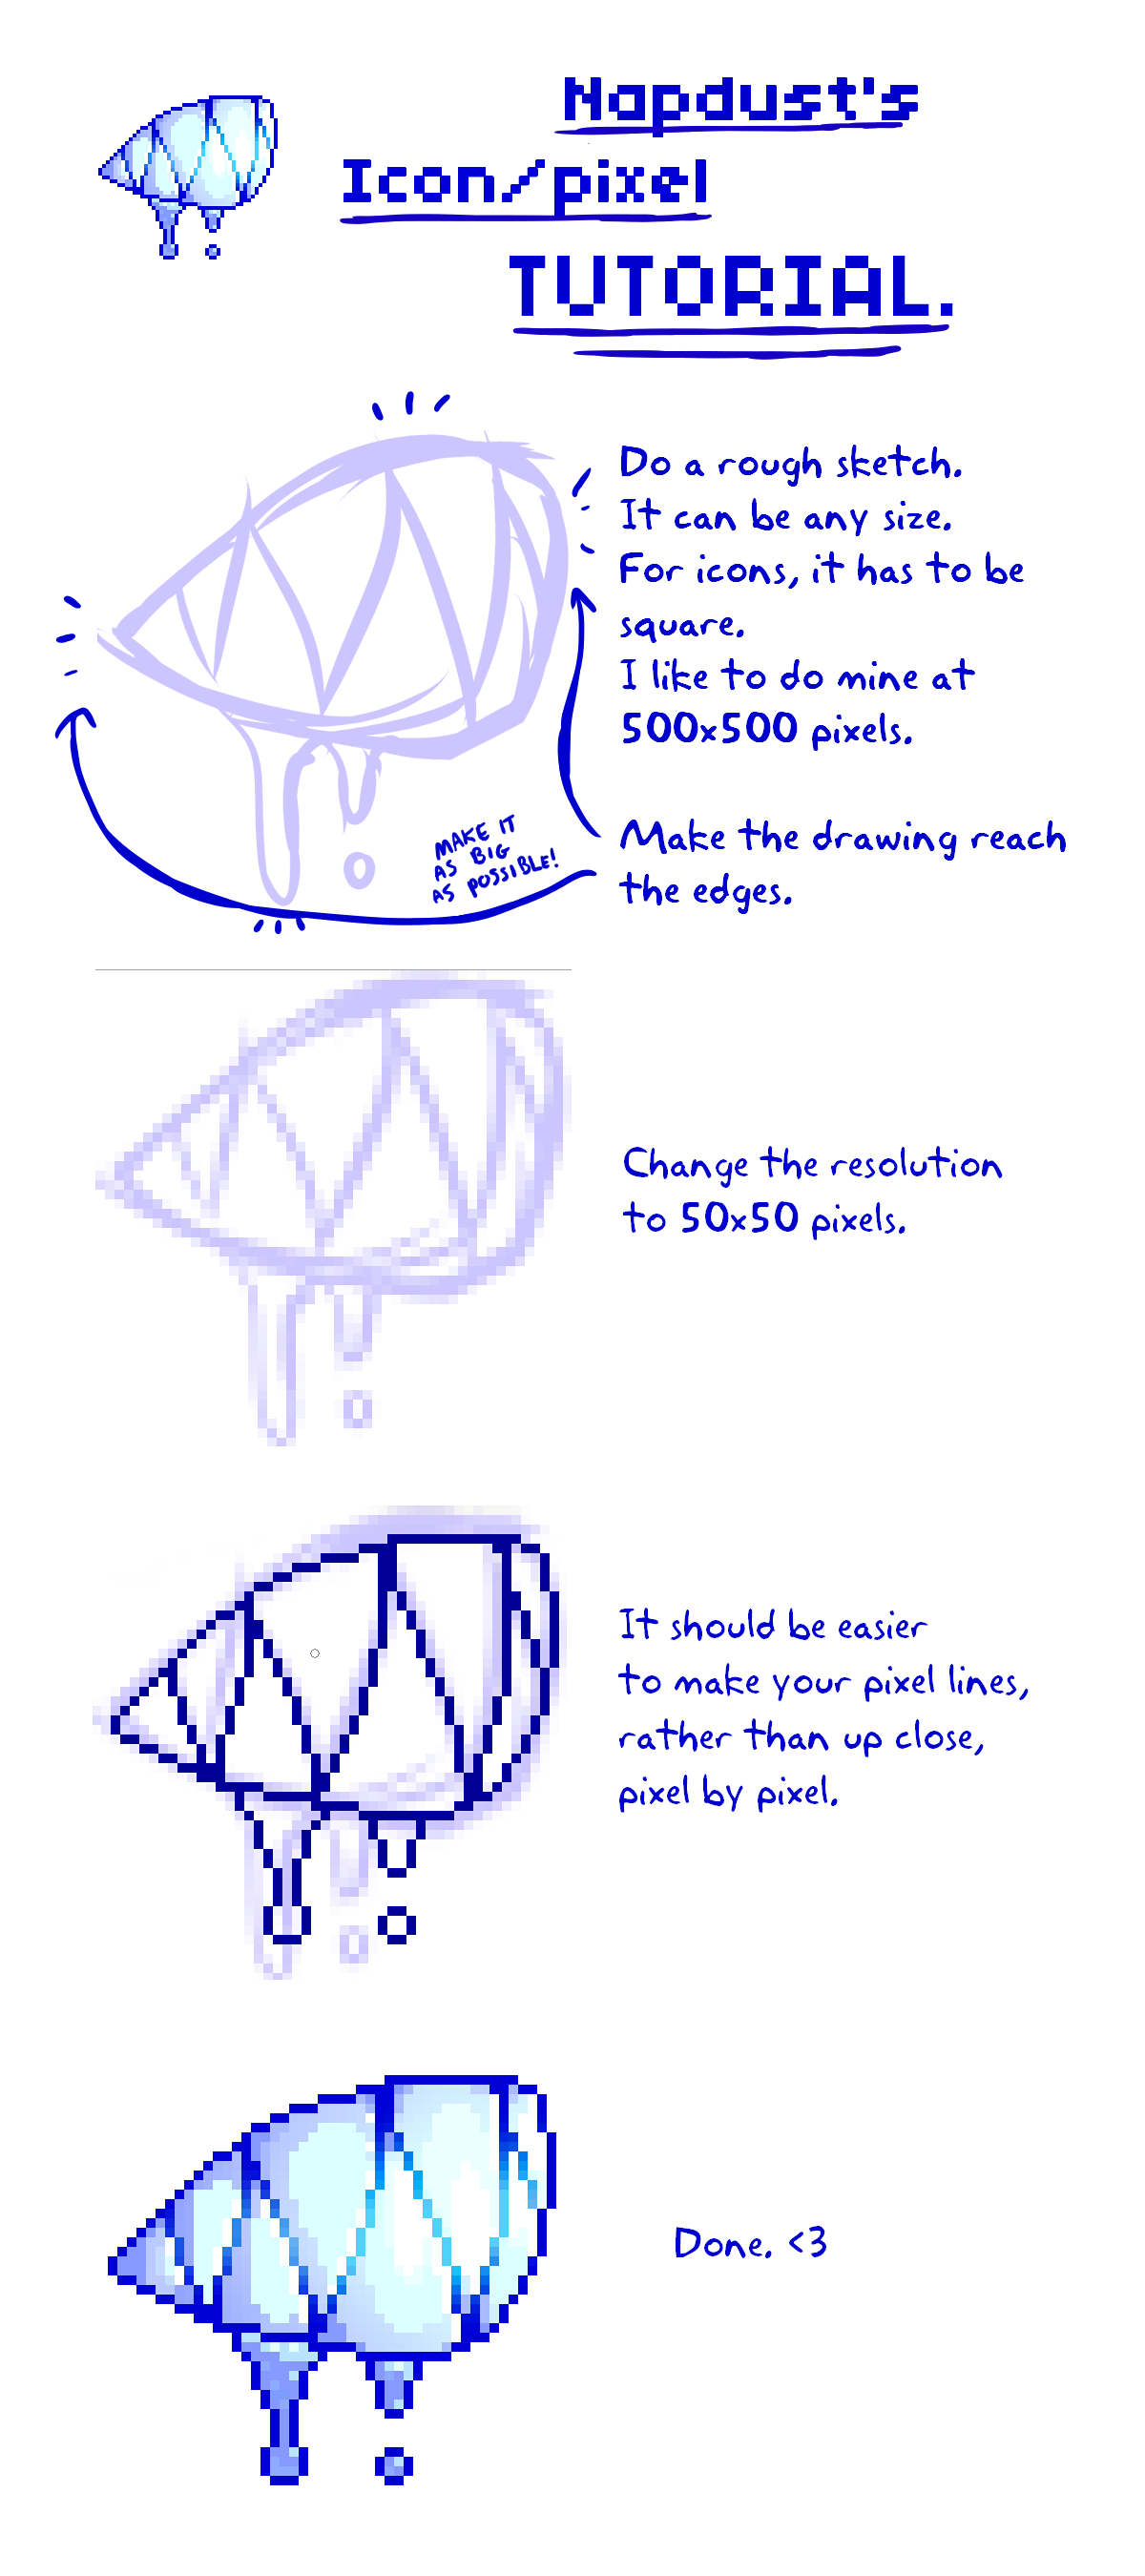 Nappy S Pixel Tutorial Lines By Napdust On Deviantart Pixel Art Tutorial Pixel Art Design Pixel Art Characters